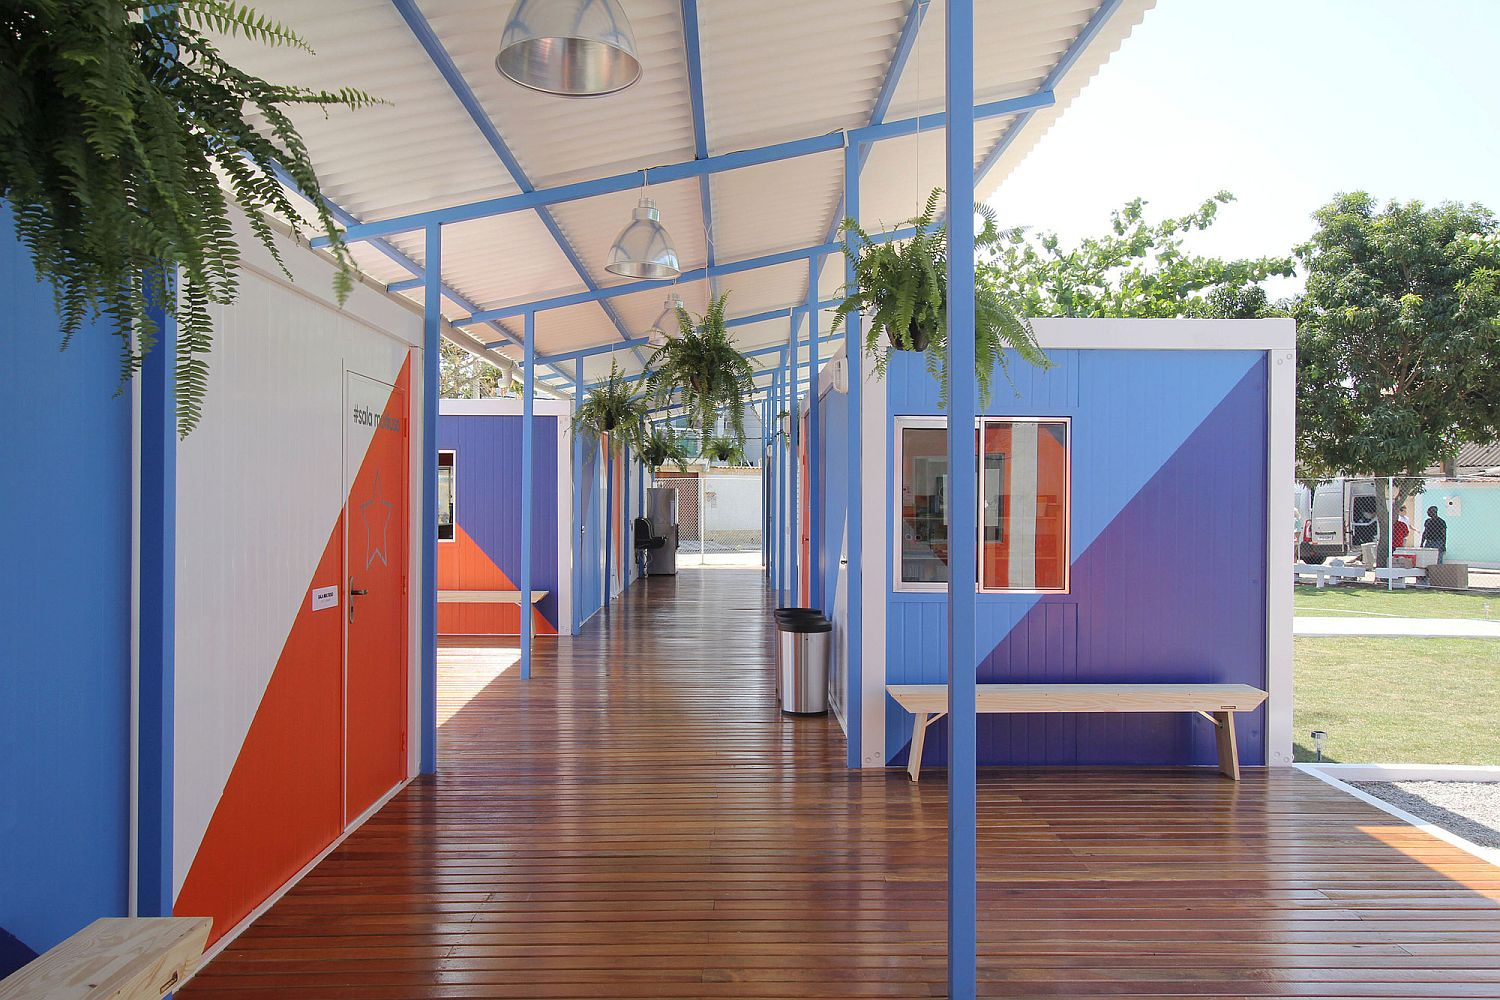 Unique and colorful interior of the social center with fiber-cement roof